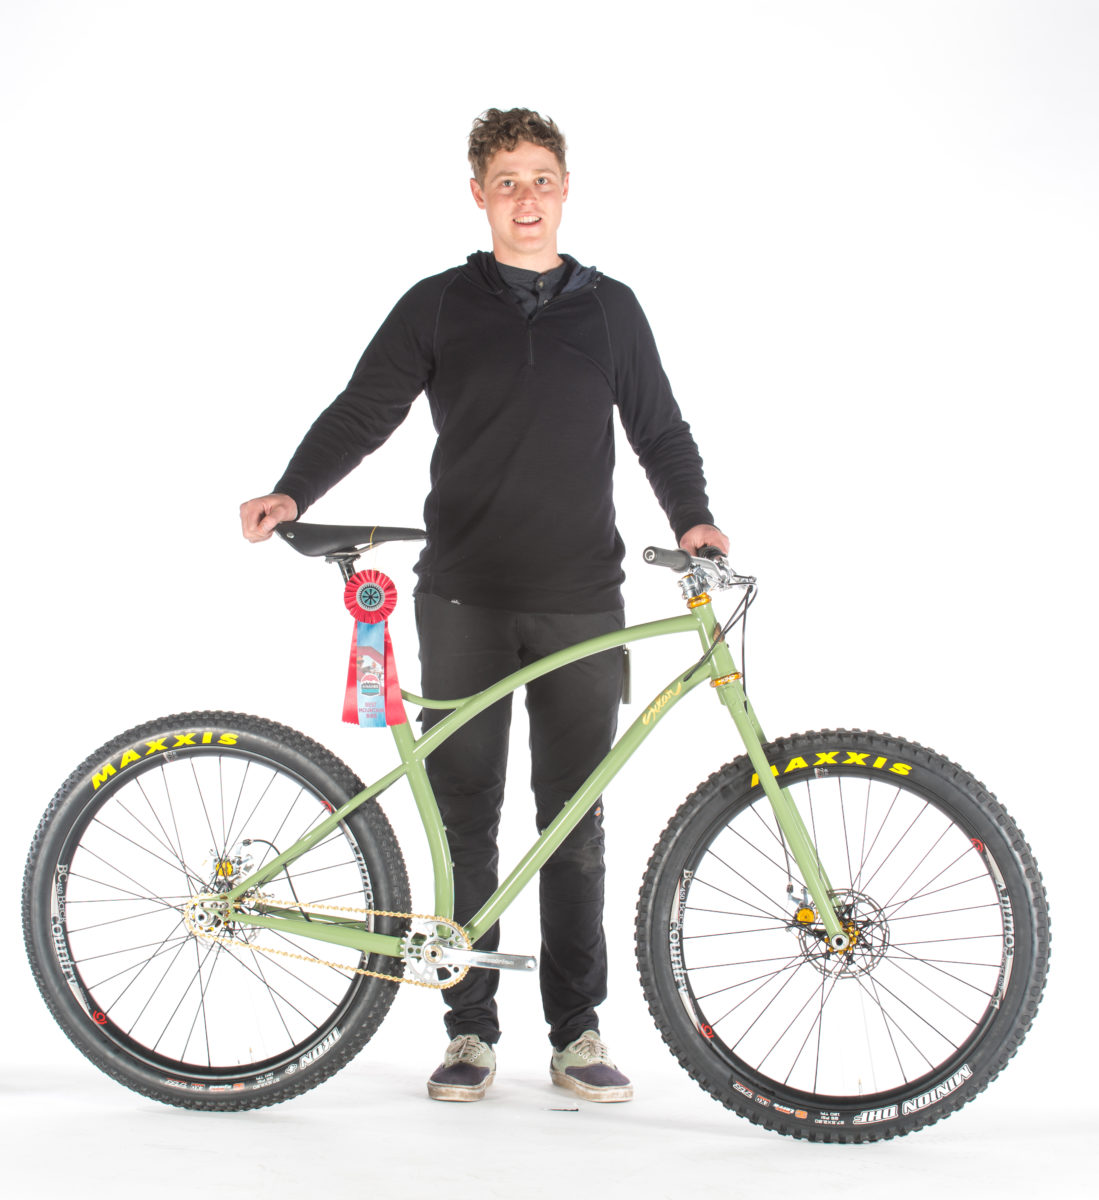 Adam Sklar with his NAHBS-winning bike (photo: ECHOS Communications)